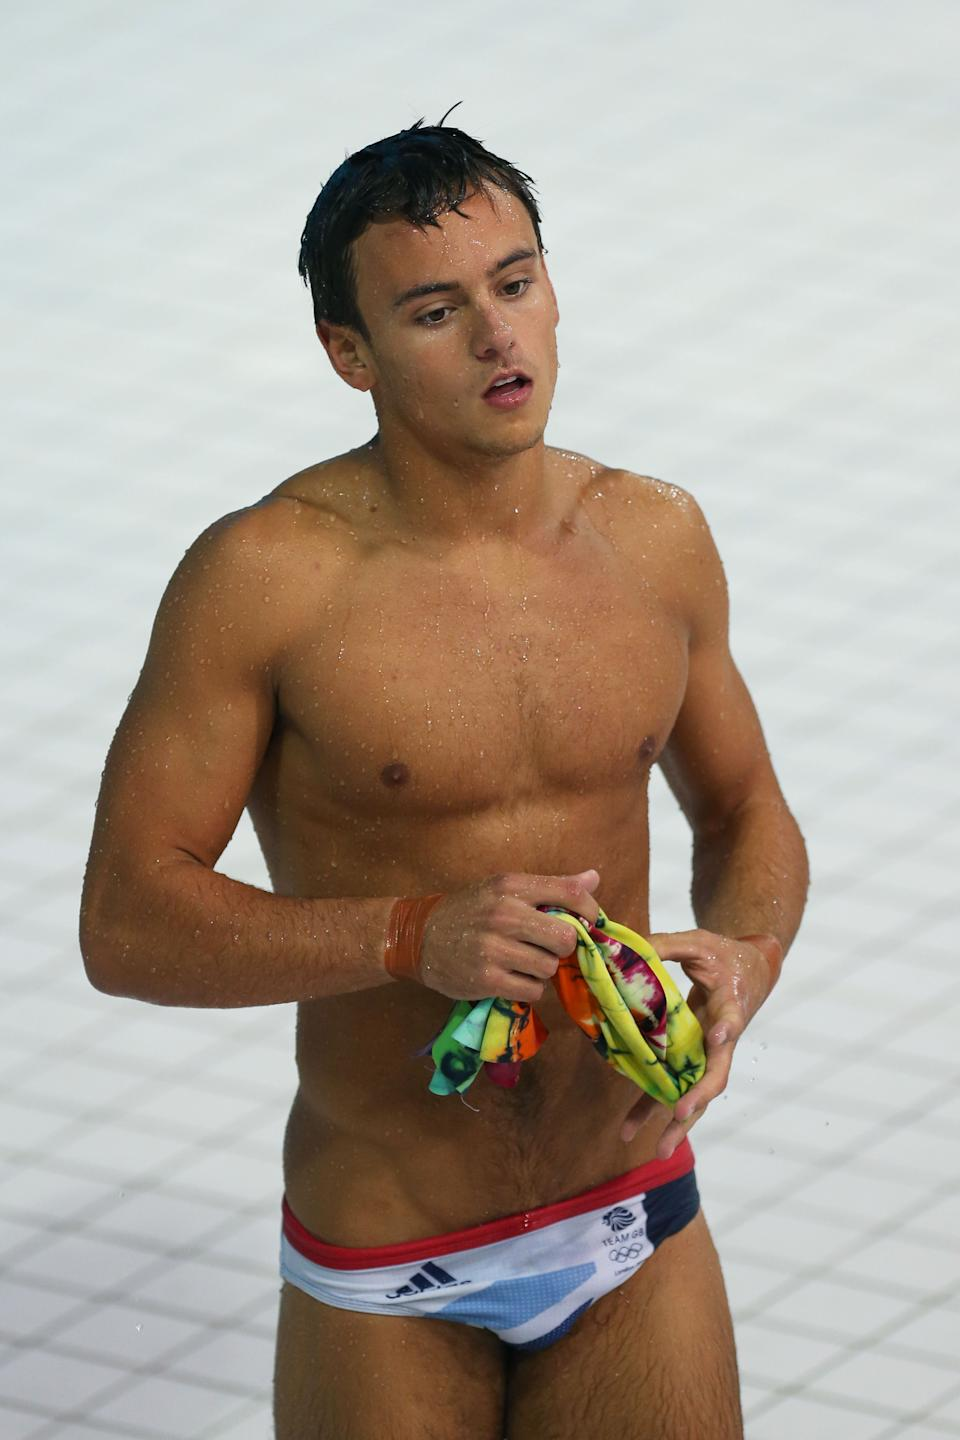 Much controversy has surrounded the British diver, Tom Daley, but one thing is indisputable his handsome face and sculpted body. (Photo by Clive Rose/Getty Images)